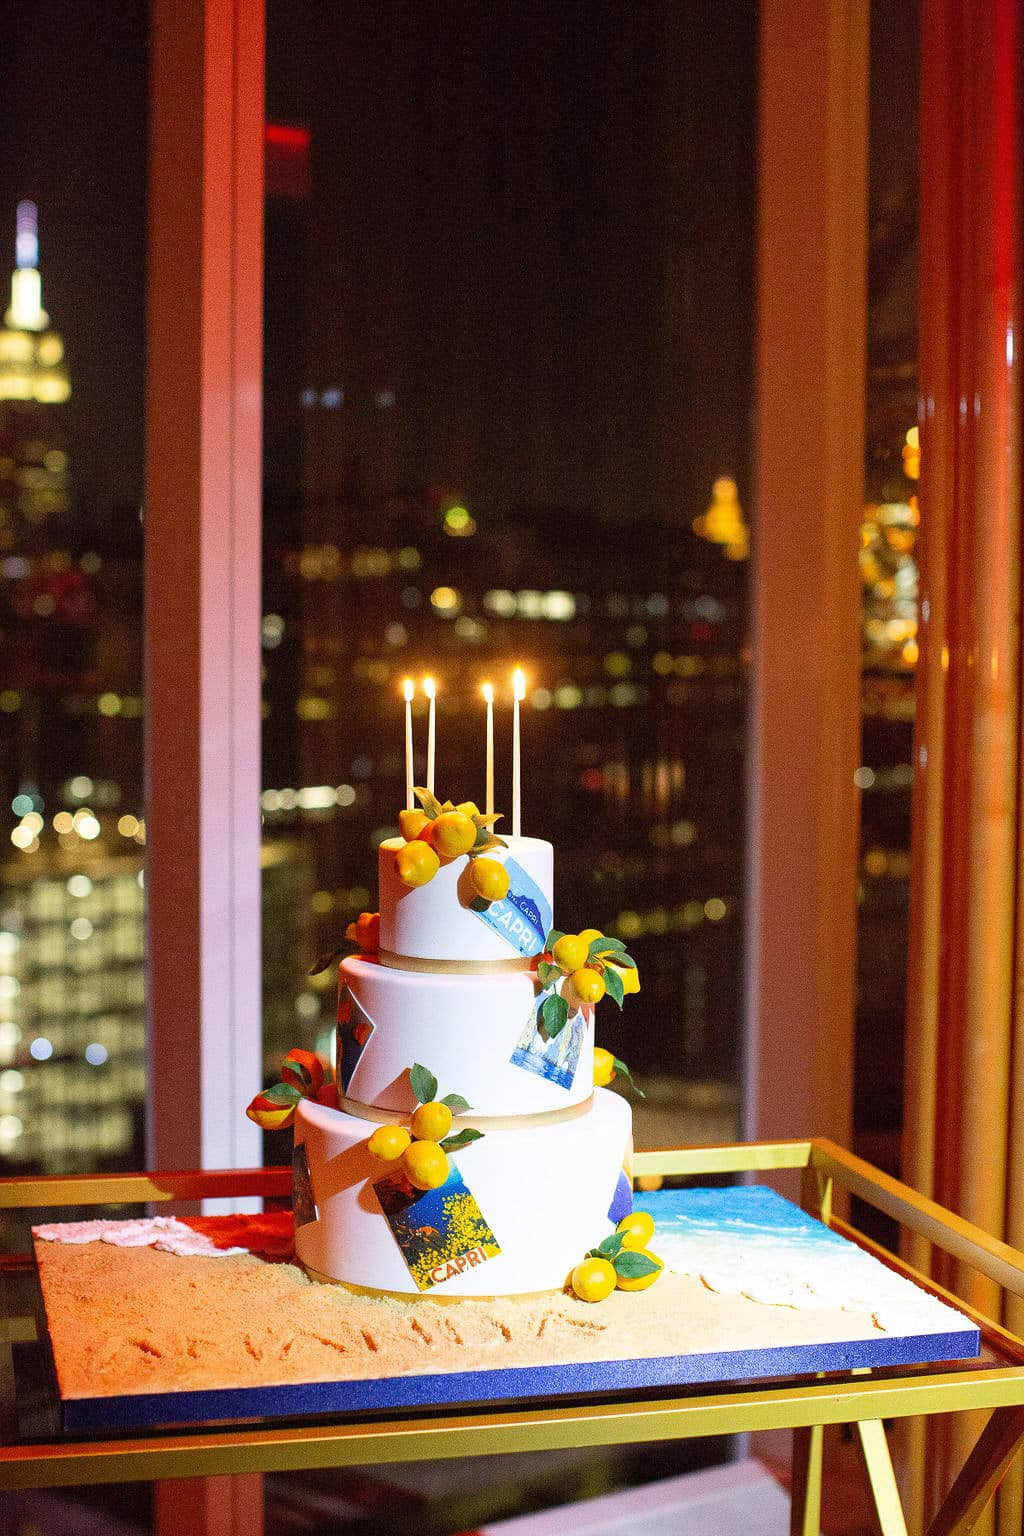 3-tier Capri-inspired birthday cake with lemon details at this 40th surprise birthday at the Boom Boom Room in NYC | Photo by Luis Zepeda